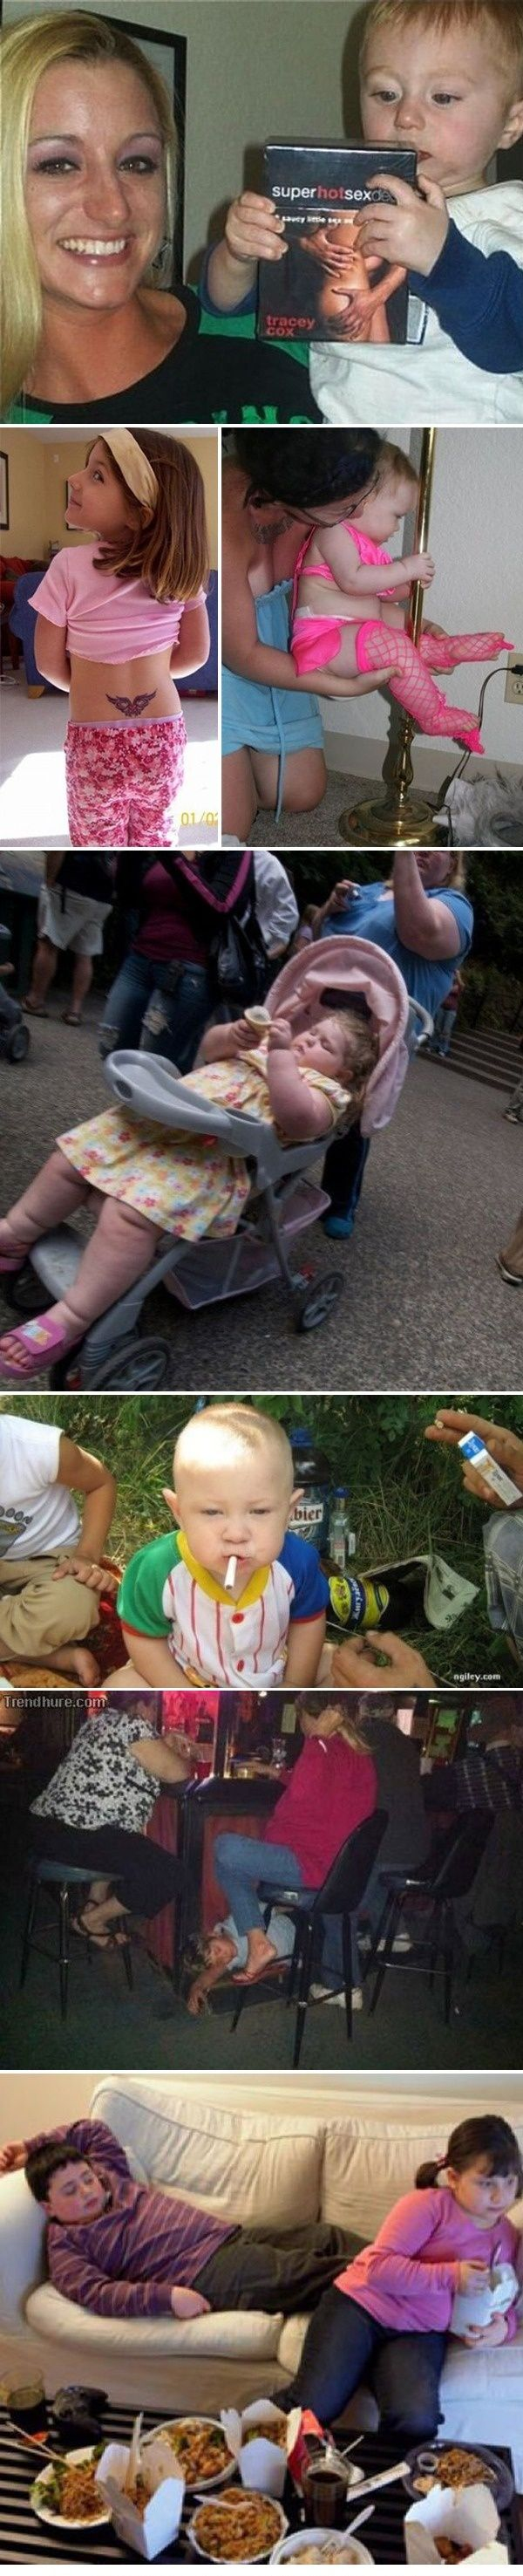 reallybadparentfail 25+ best Bad parenting ideas on Pinterest | Bad parenting quotes, Kids  behavior and Behavior change theory